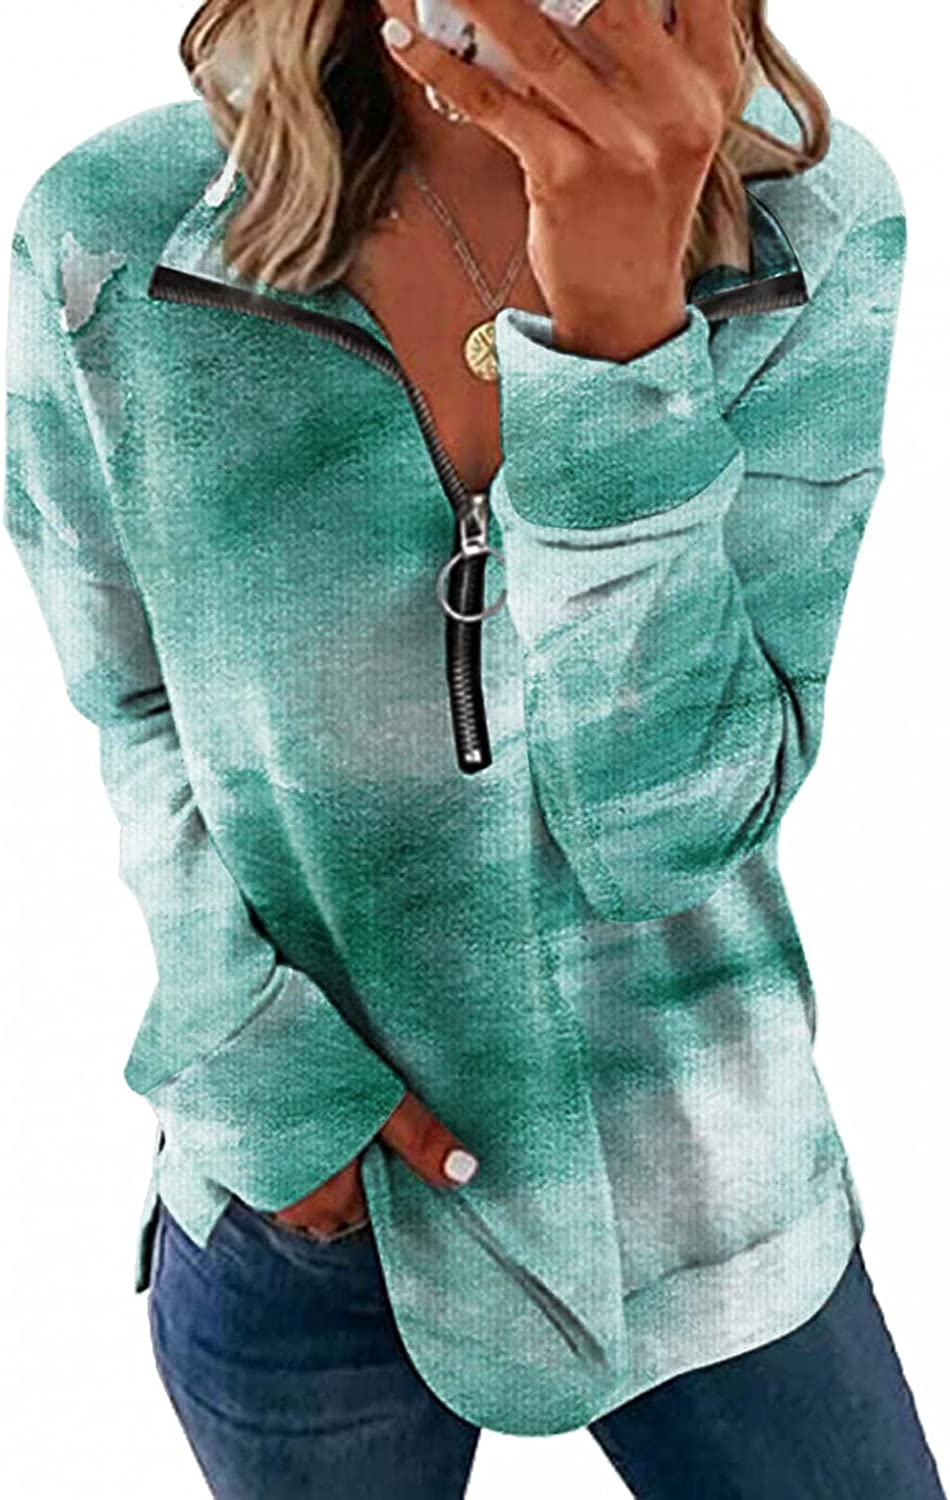 UQGHQO Fashion Sweatshirt for Women, Womens Contrast Color Lapel Zip Up Blouse Long Sleeve Lightweight Pullover T-Shirts